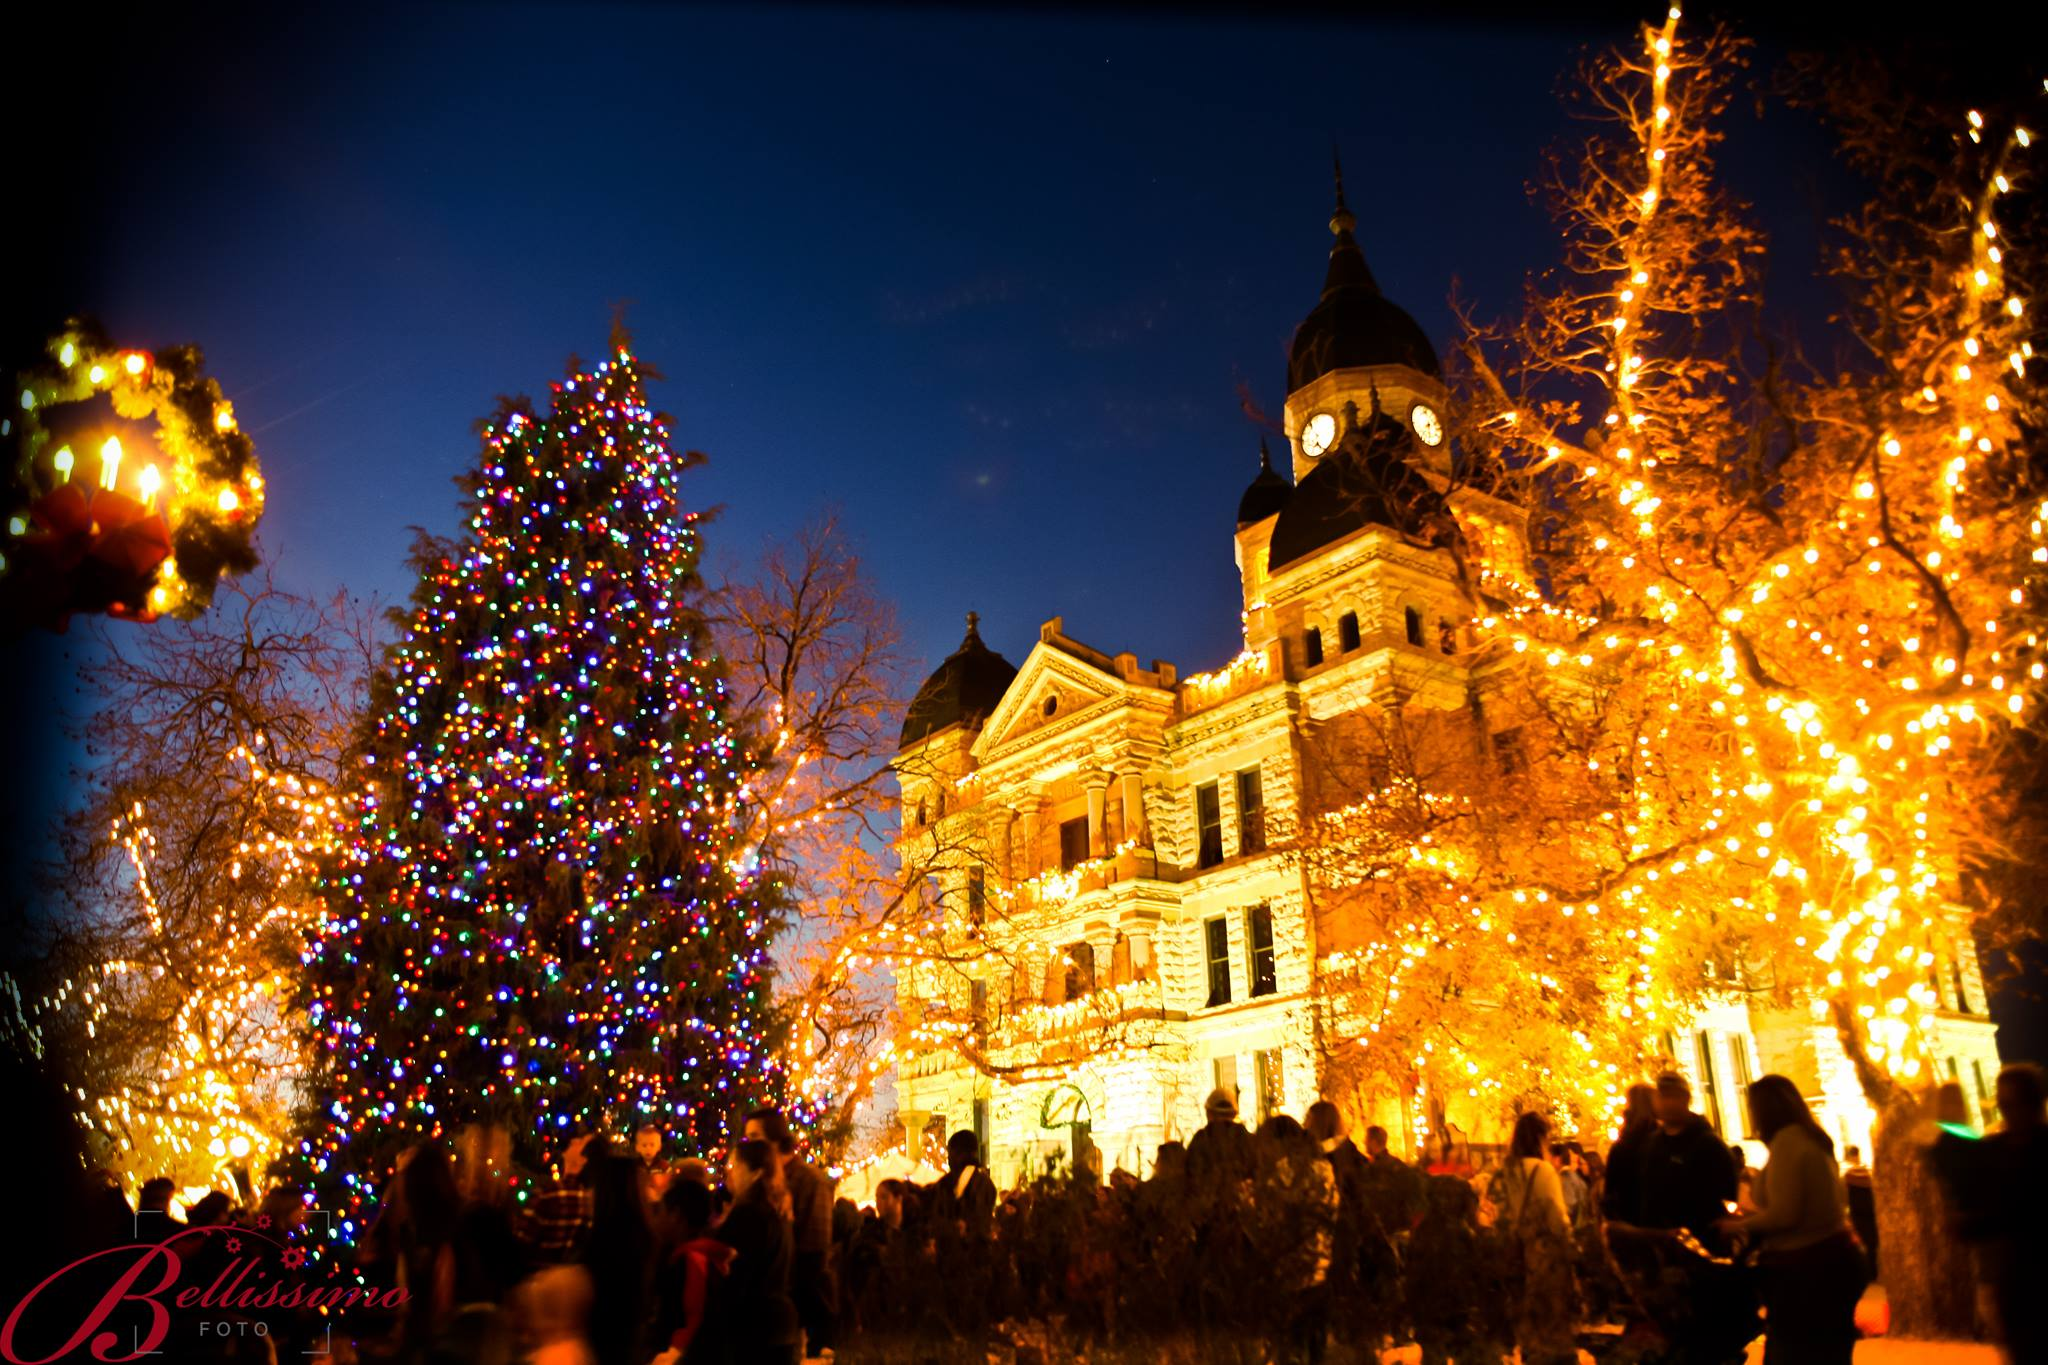 Enjoy the small town feel at Denton's annual holiday lighting event this Friday. Photo: Bellissimo Foto